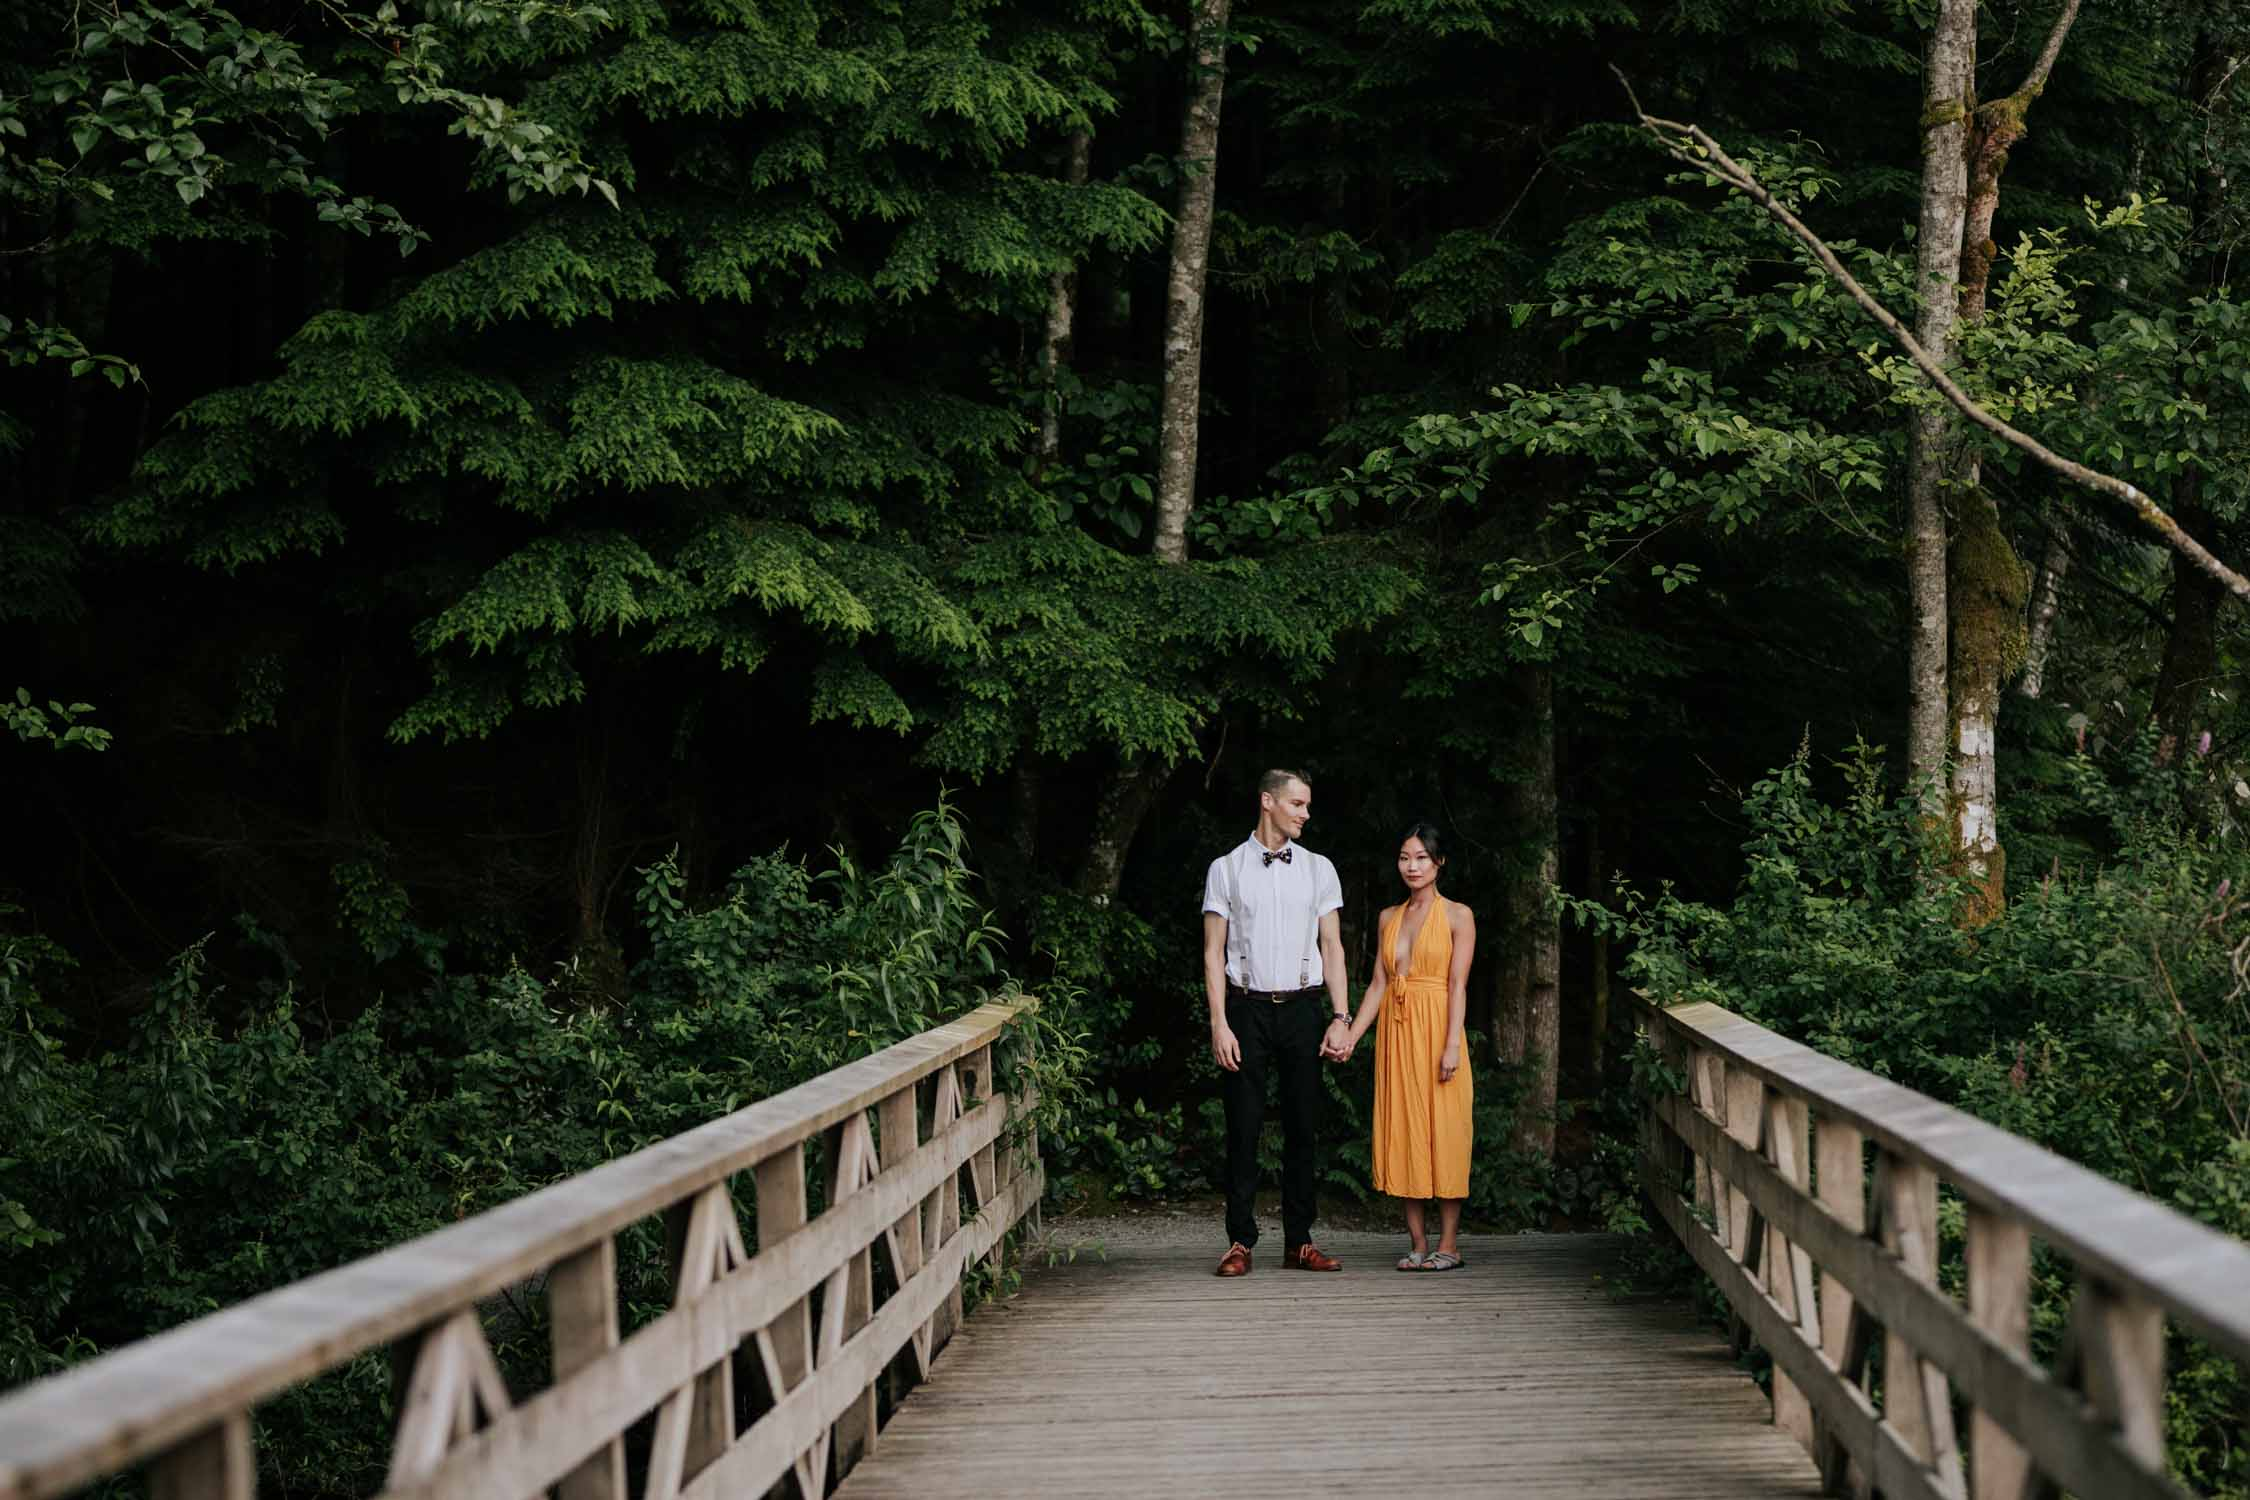 Mixed couple stand on wooden bridge at Rice Lake holding hands. She is Chinese and is wearing a yellow dress, he is white and is wearing a bowtie.